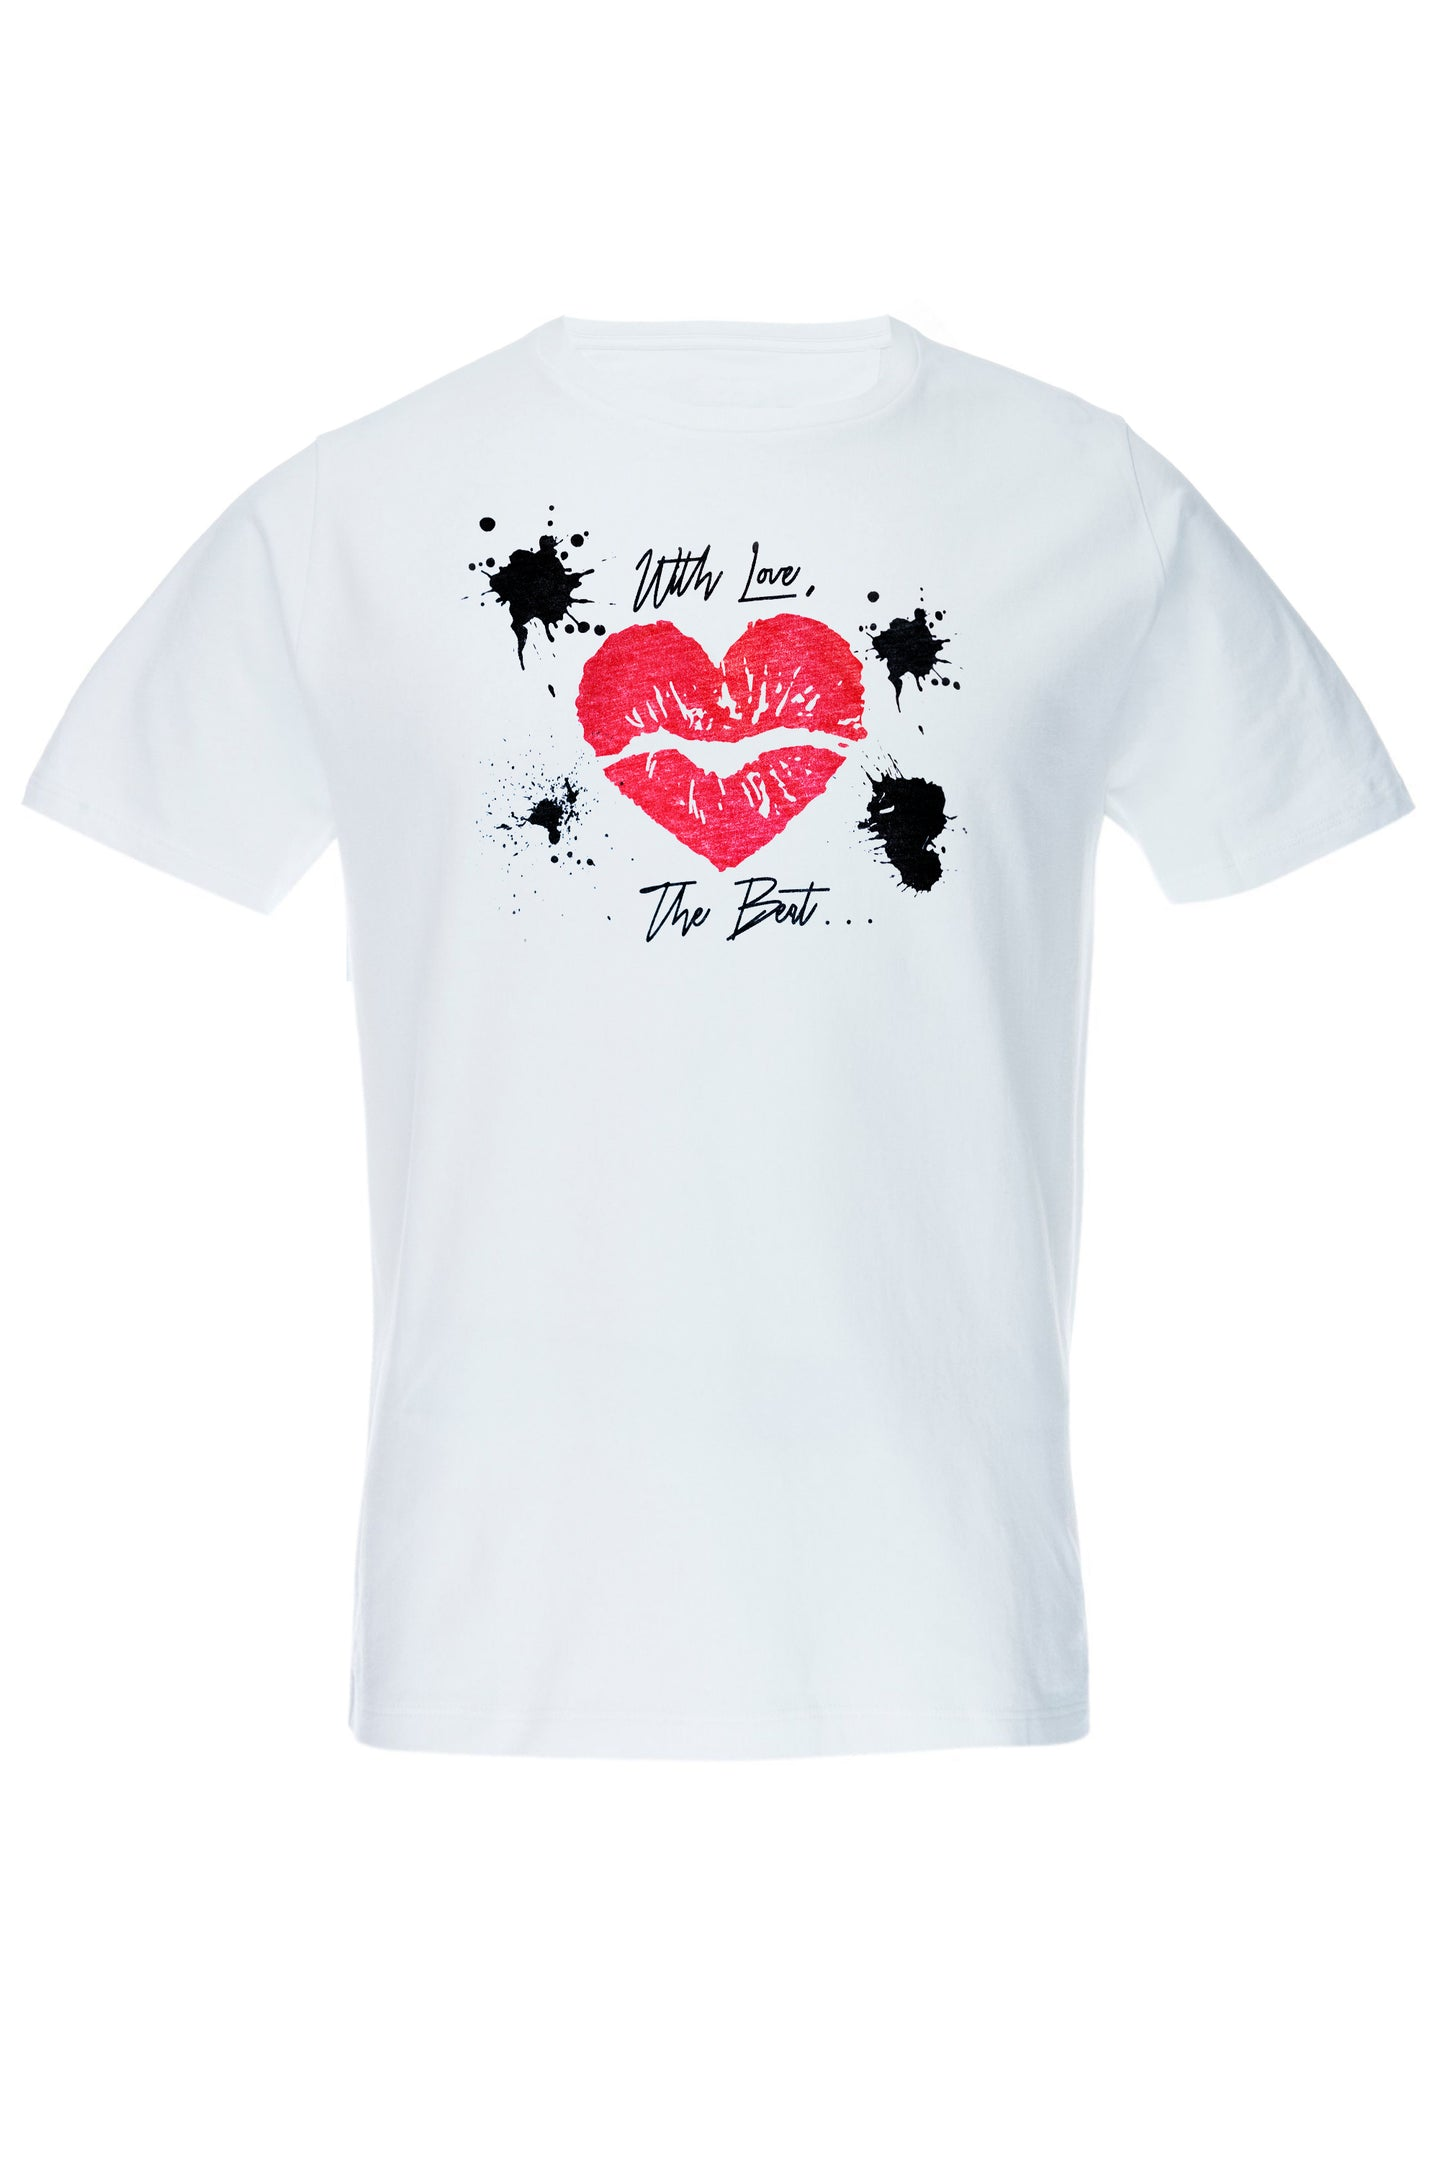 WITH LOVE TEE - The Beat House